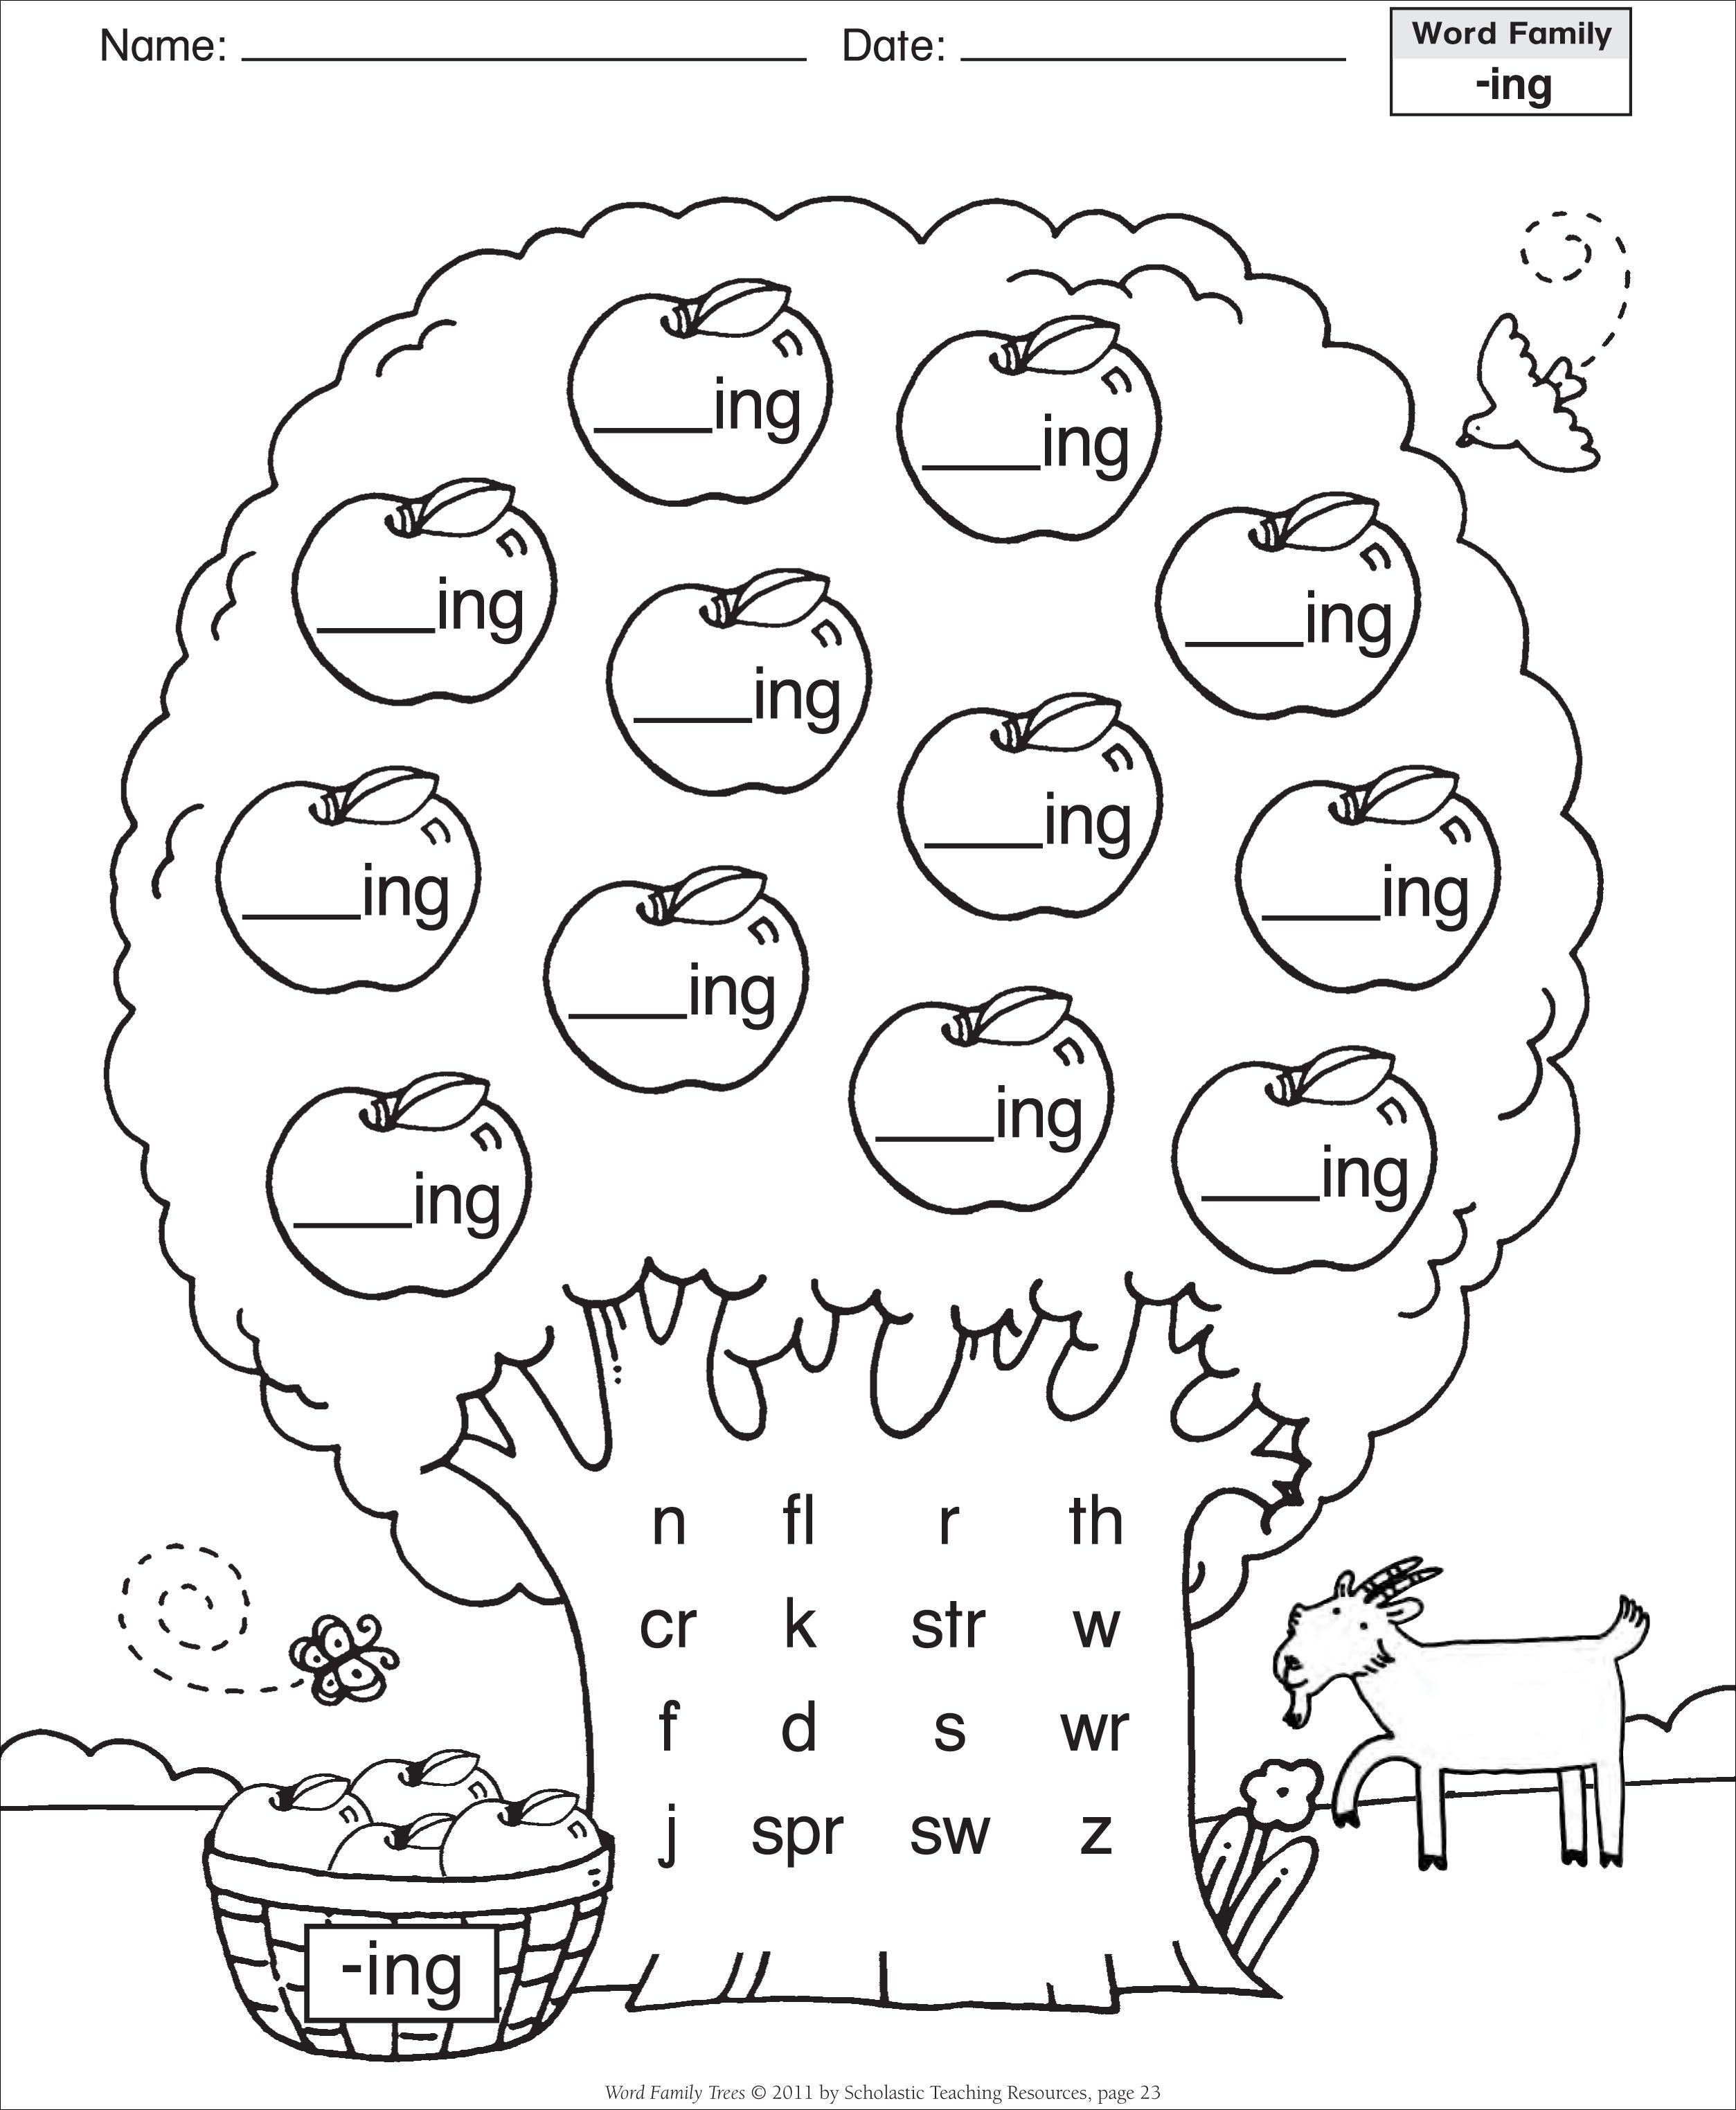 Word+Family+Worksheets Word family worksheets, Word families